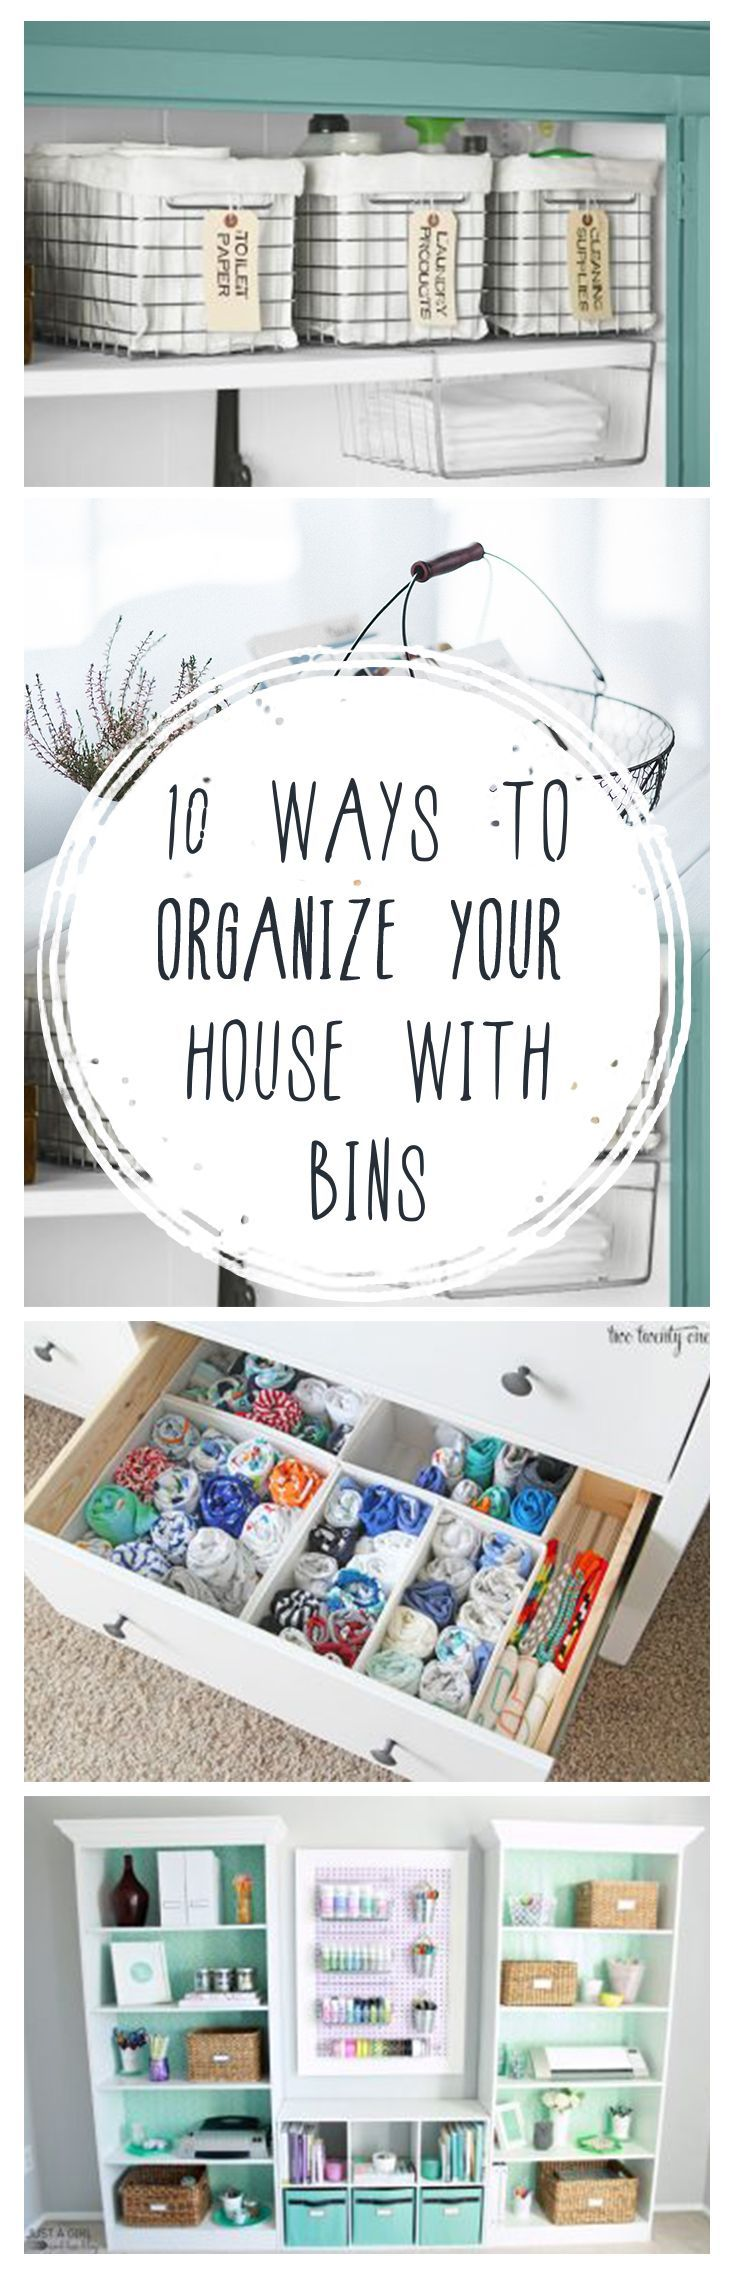 organization, organizing hacks, stay organized, home, home decor, cleaning, cleaning tips, diy organiz